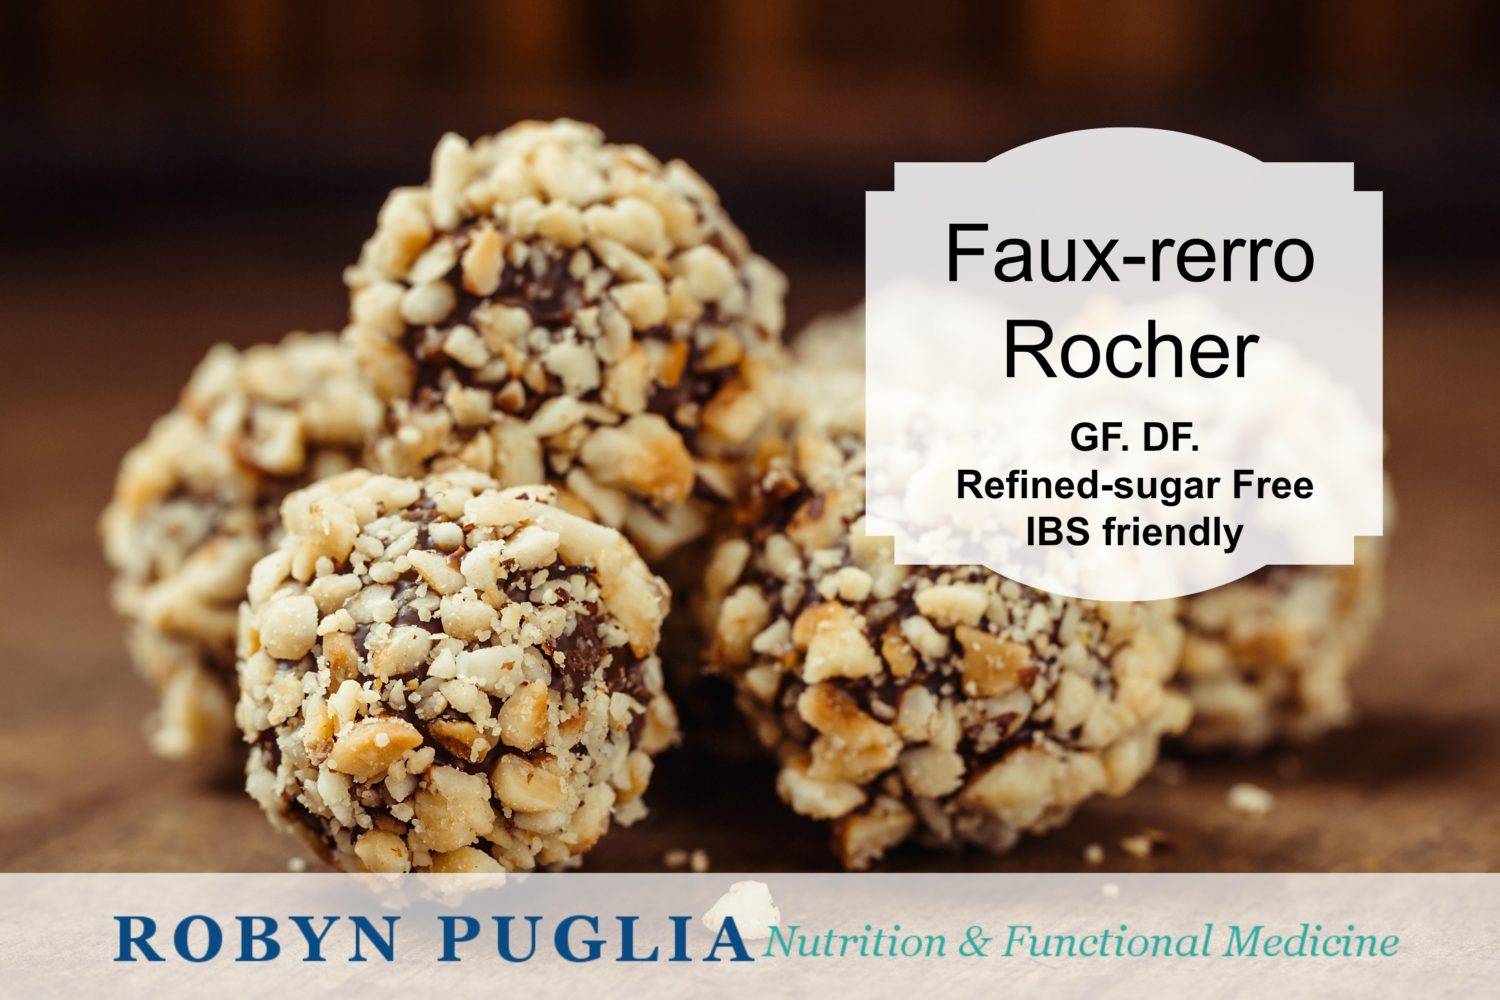 healthy chocolate recipe Fauxrerro Rocher